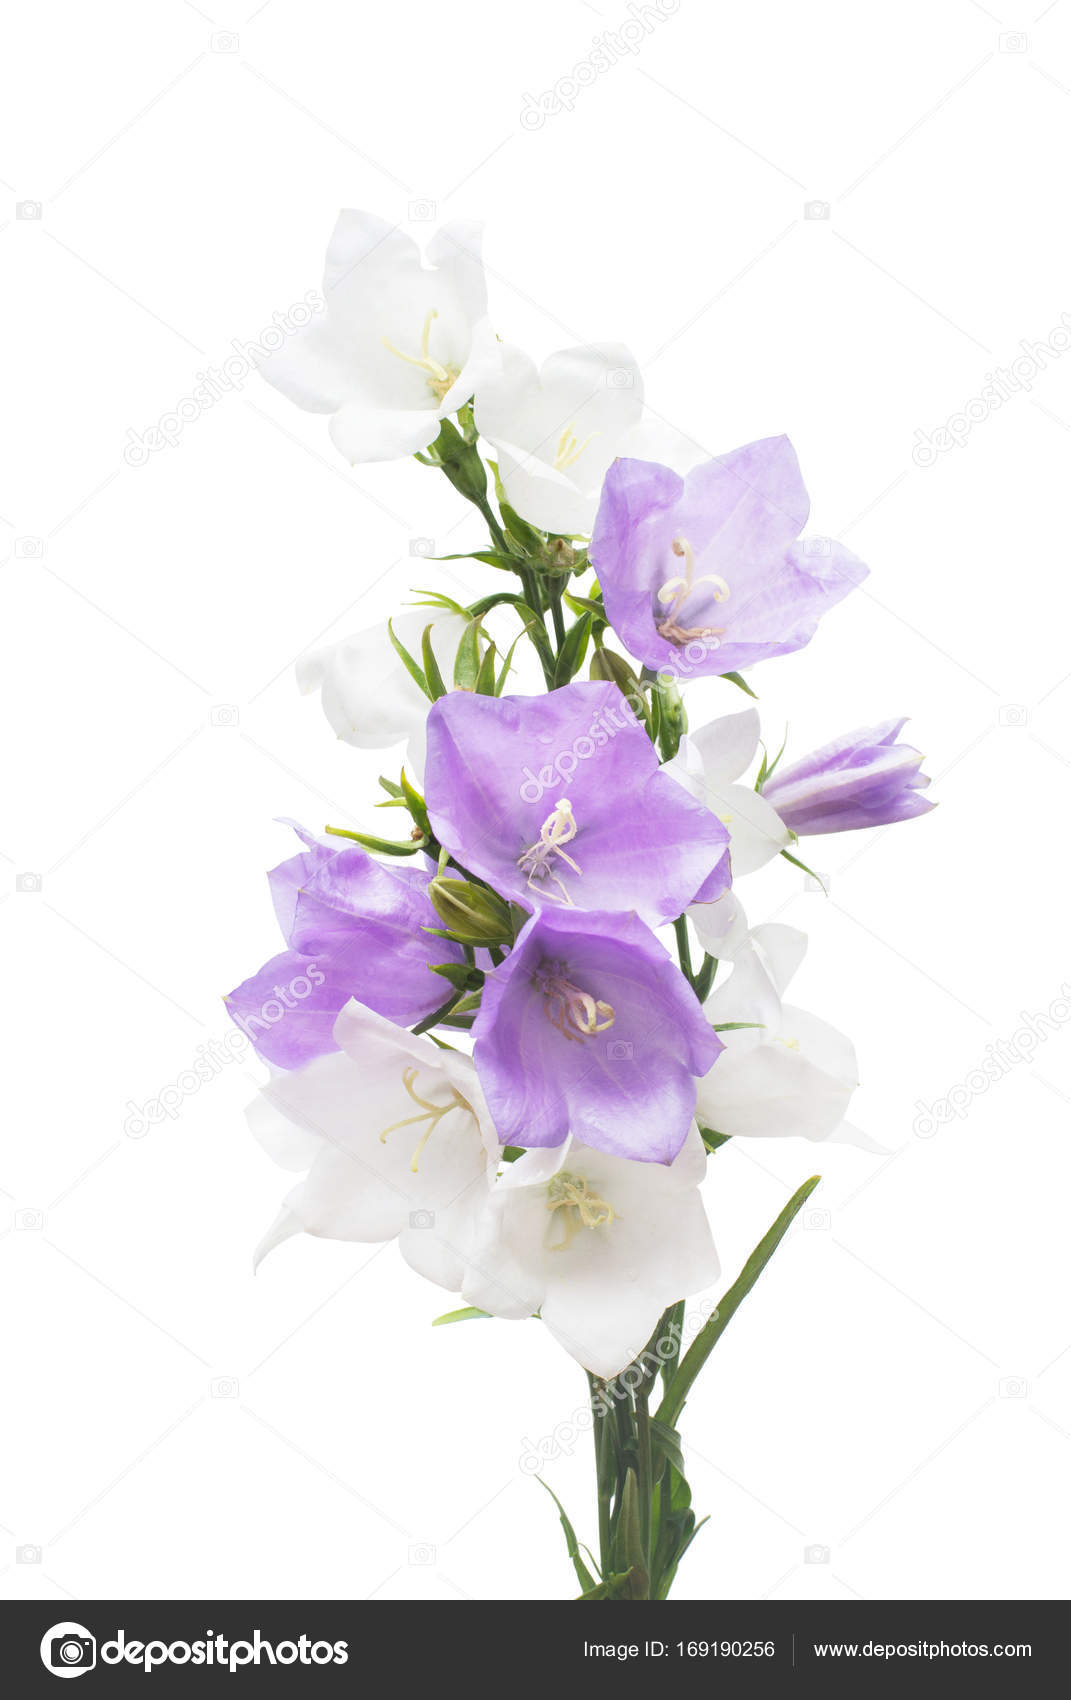 Blue and white bell flowers isolated on white background flower blue and white bell flowers isolated on white background flower stock photo mightylinksfo